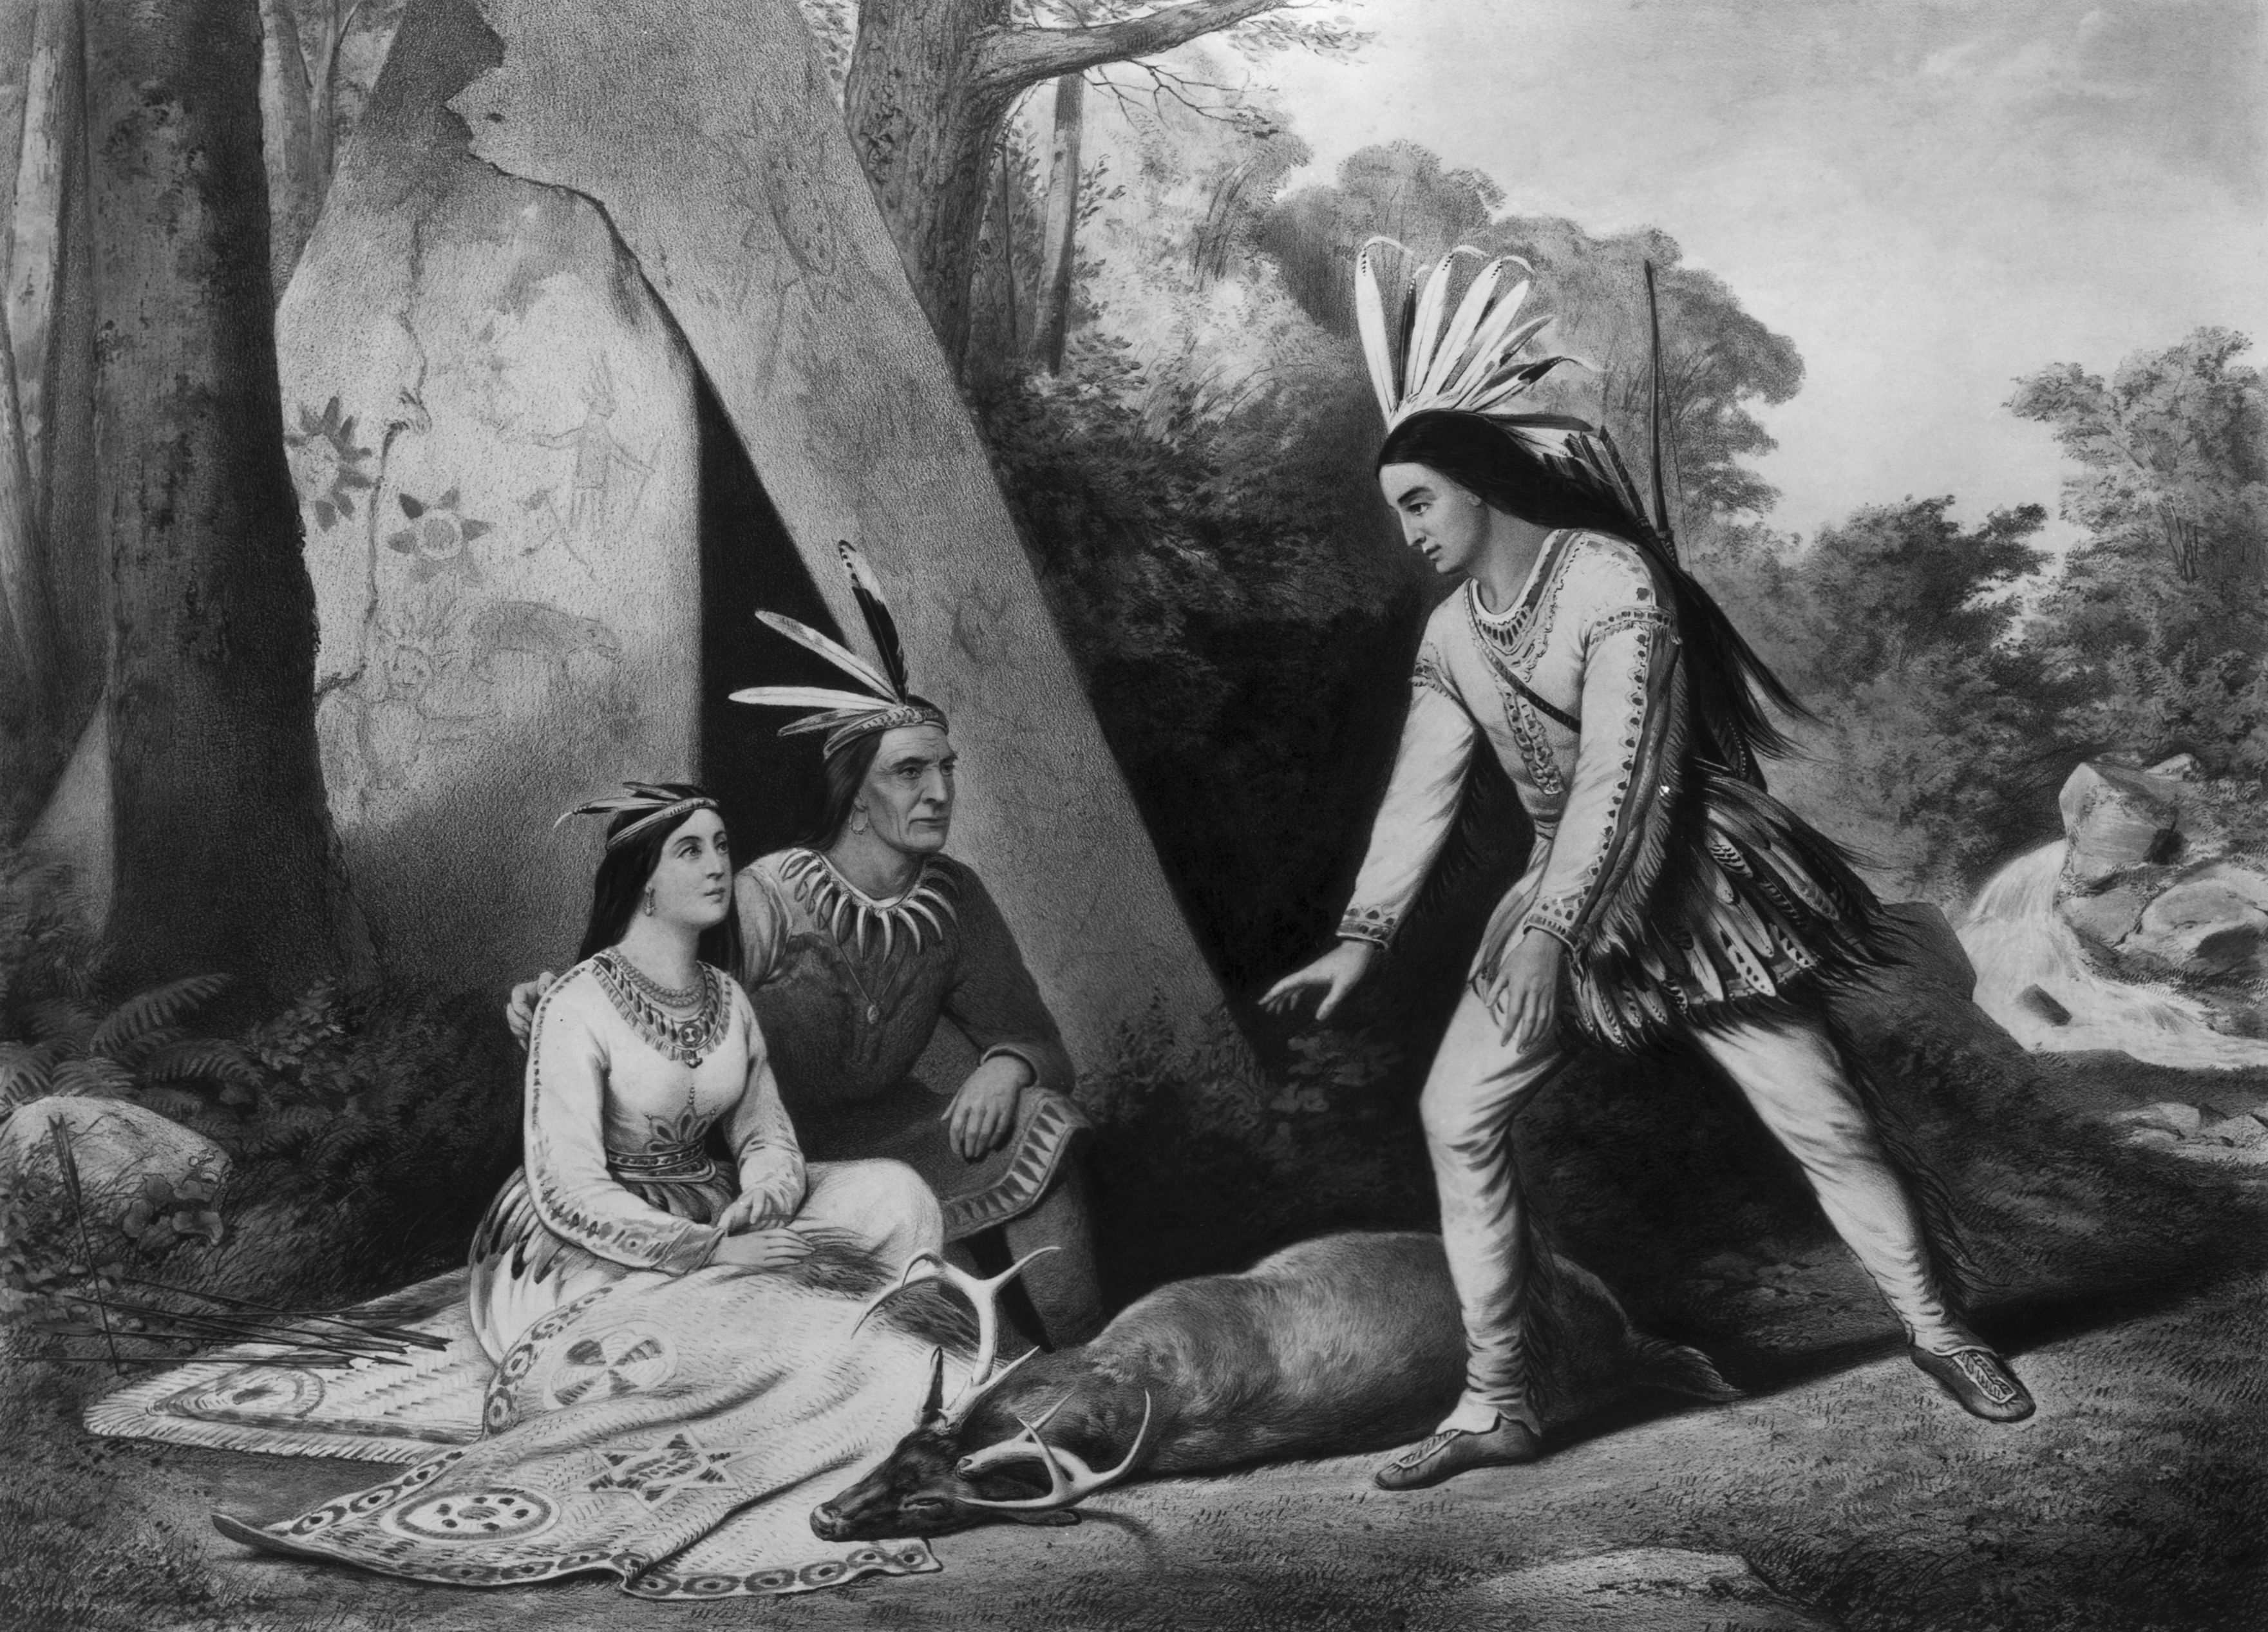 Wooing of Hiawatha - Currier and Ives based on Longfellow